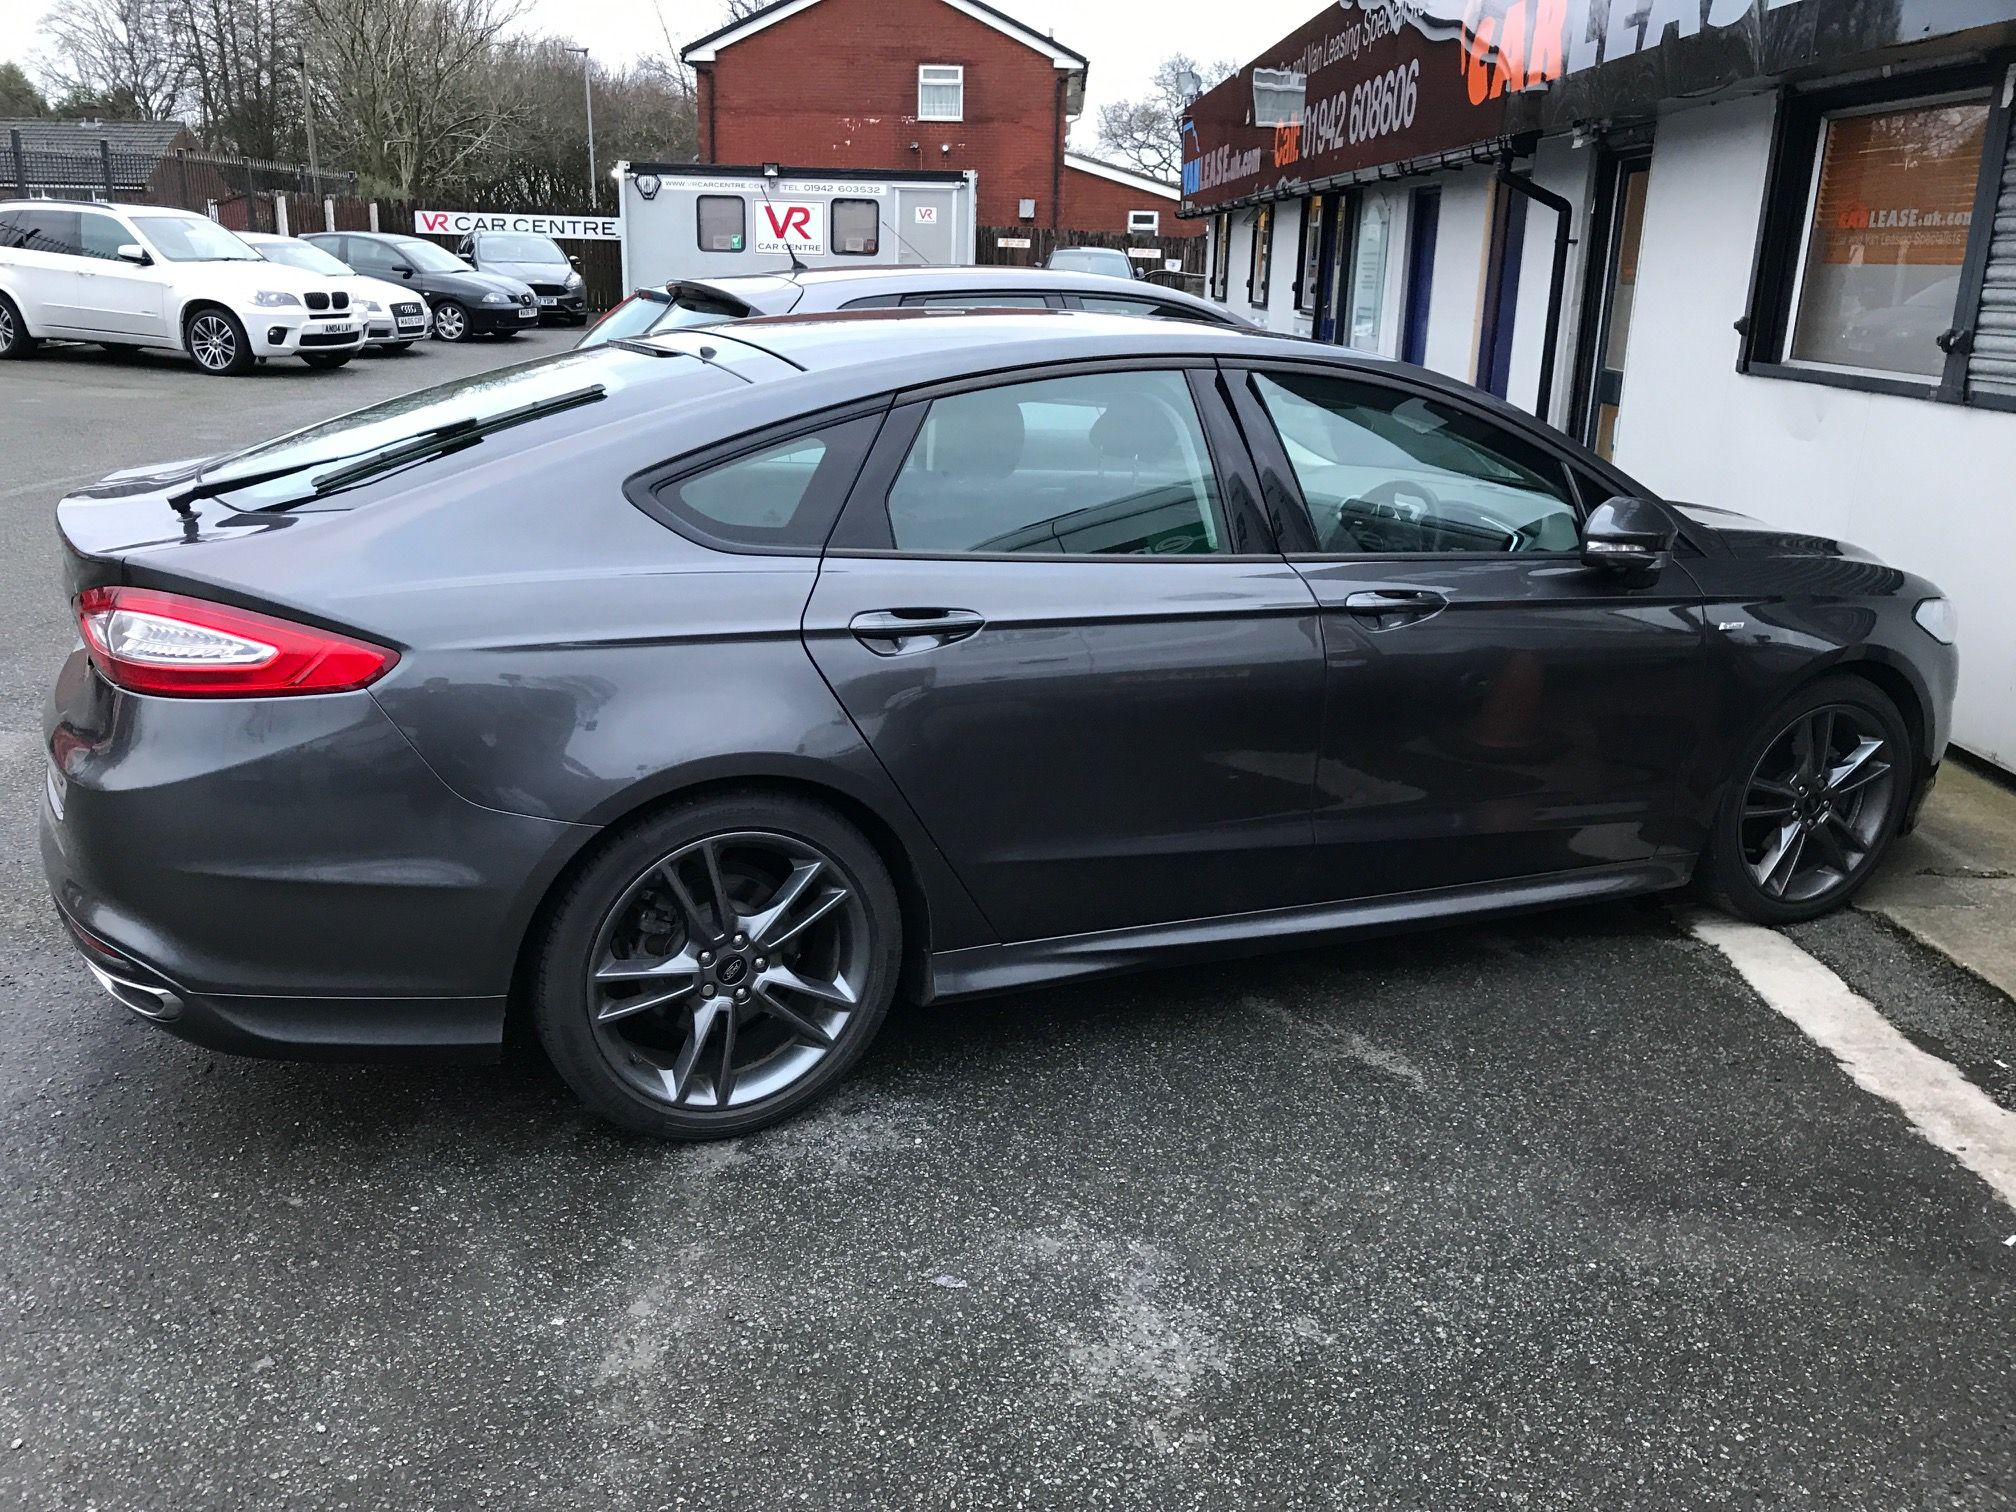 The Ford Mondeo Diesel Hatchback 2 0 Tdci 180 St Line 5dr Powershift Carleasing Cars Ford Car Lease Ford Mondeo Ford